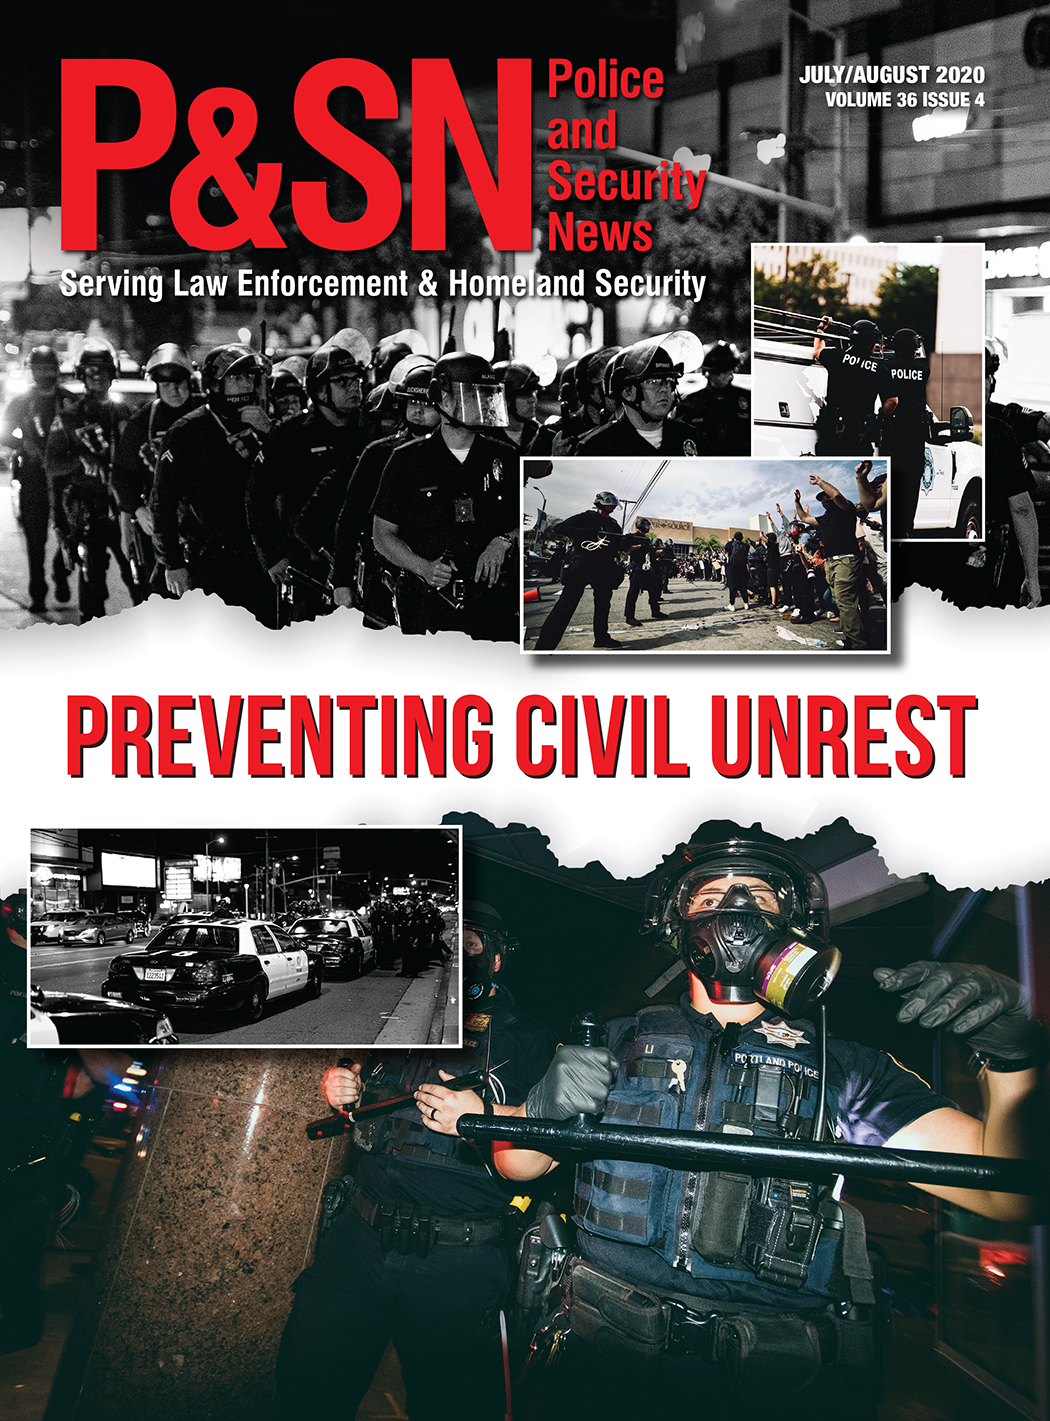 Police and Security News Print Cover